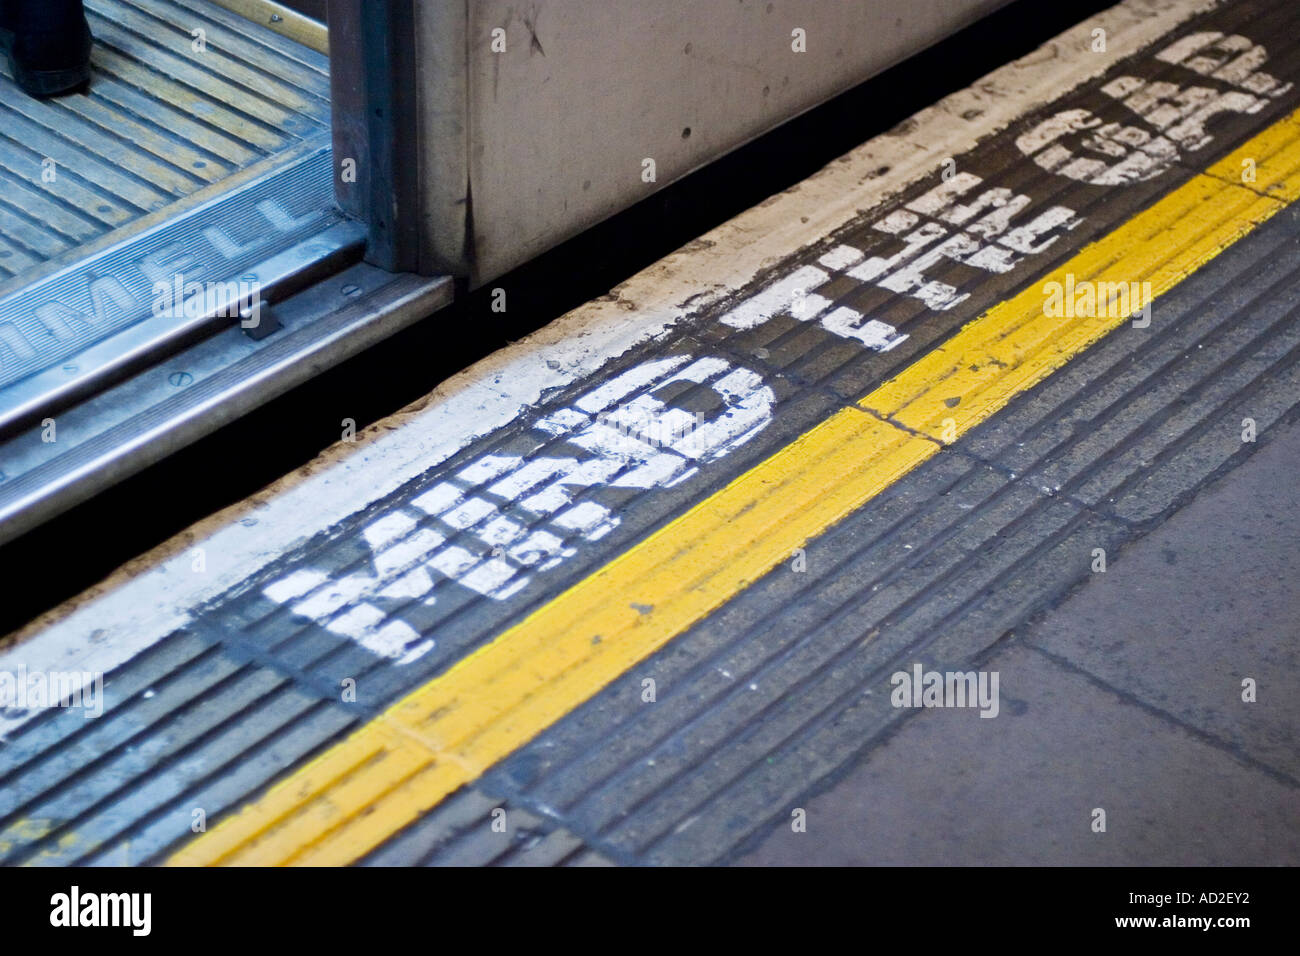 Open tube train door on London Underground platform with mind the gap sign on platform floor - Stock Image